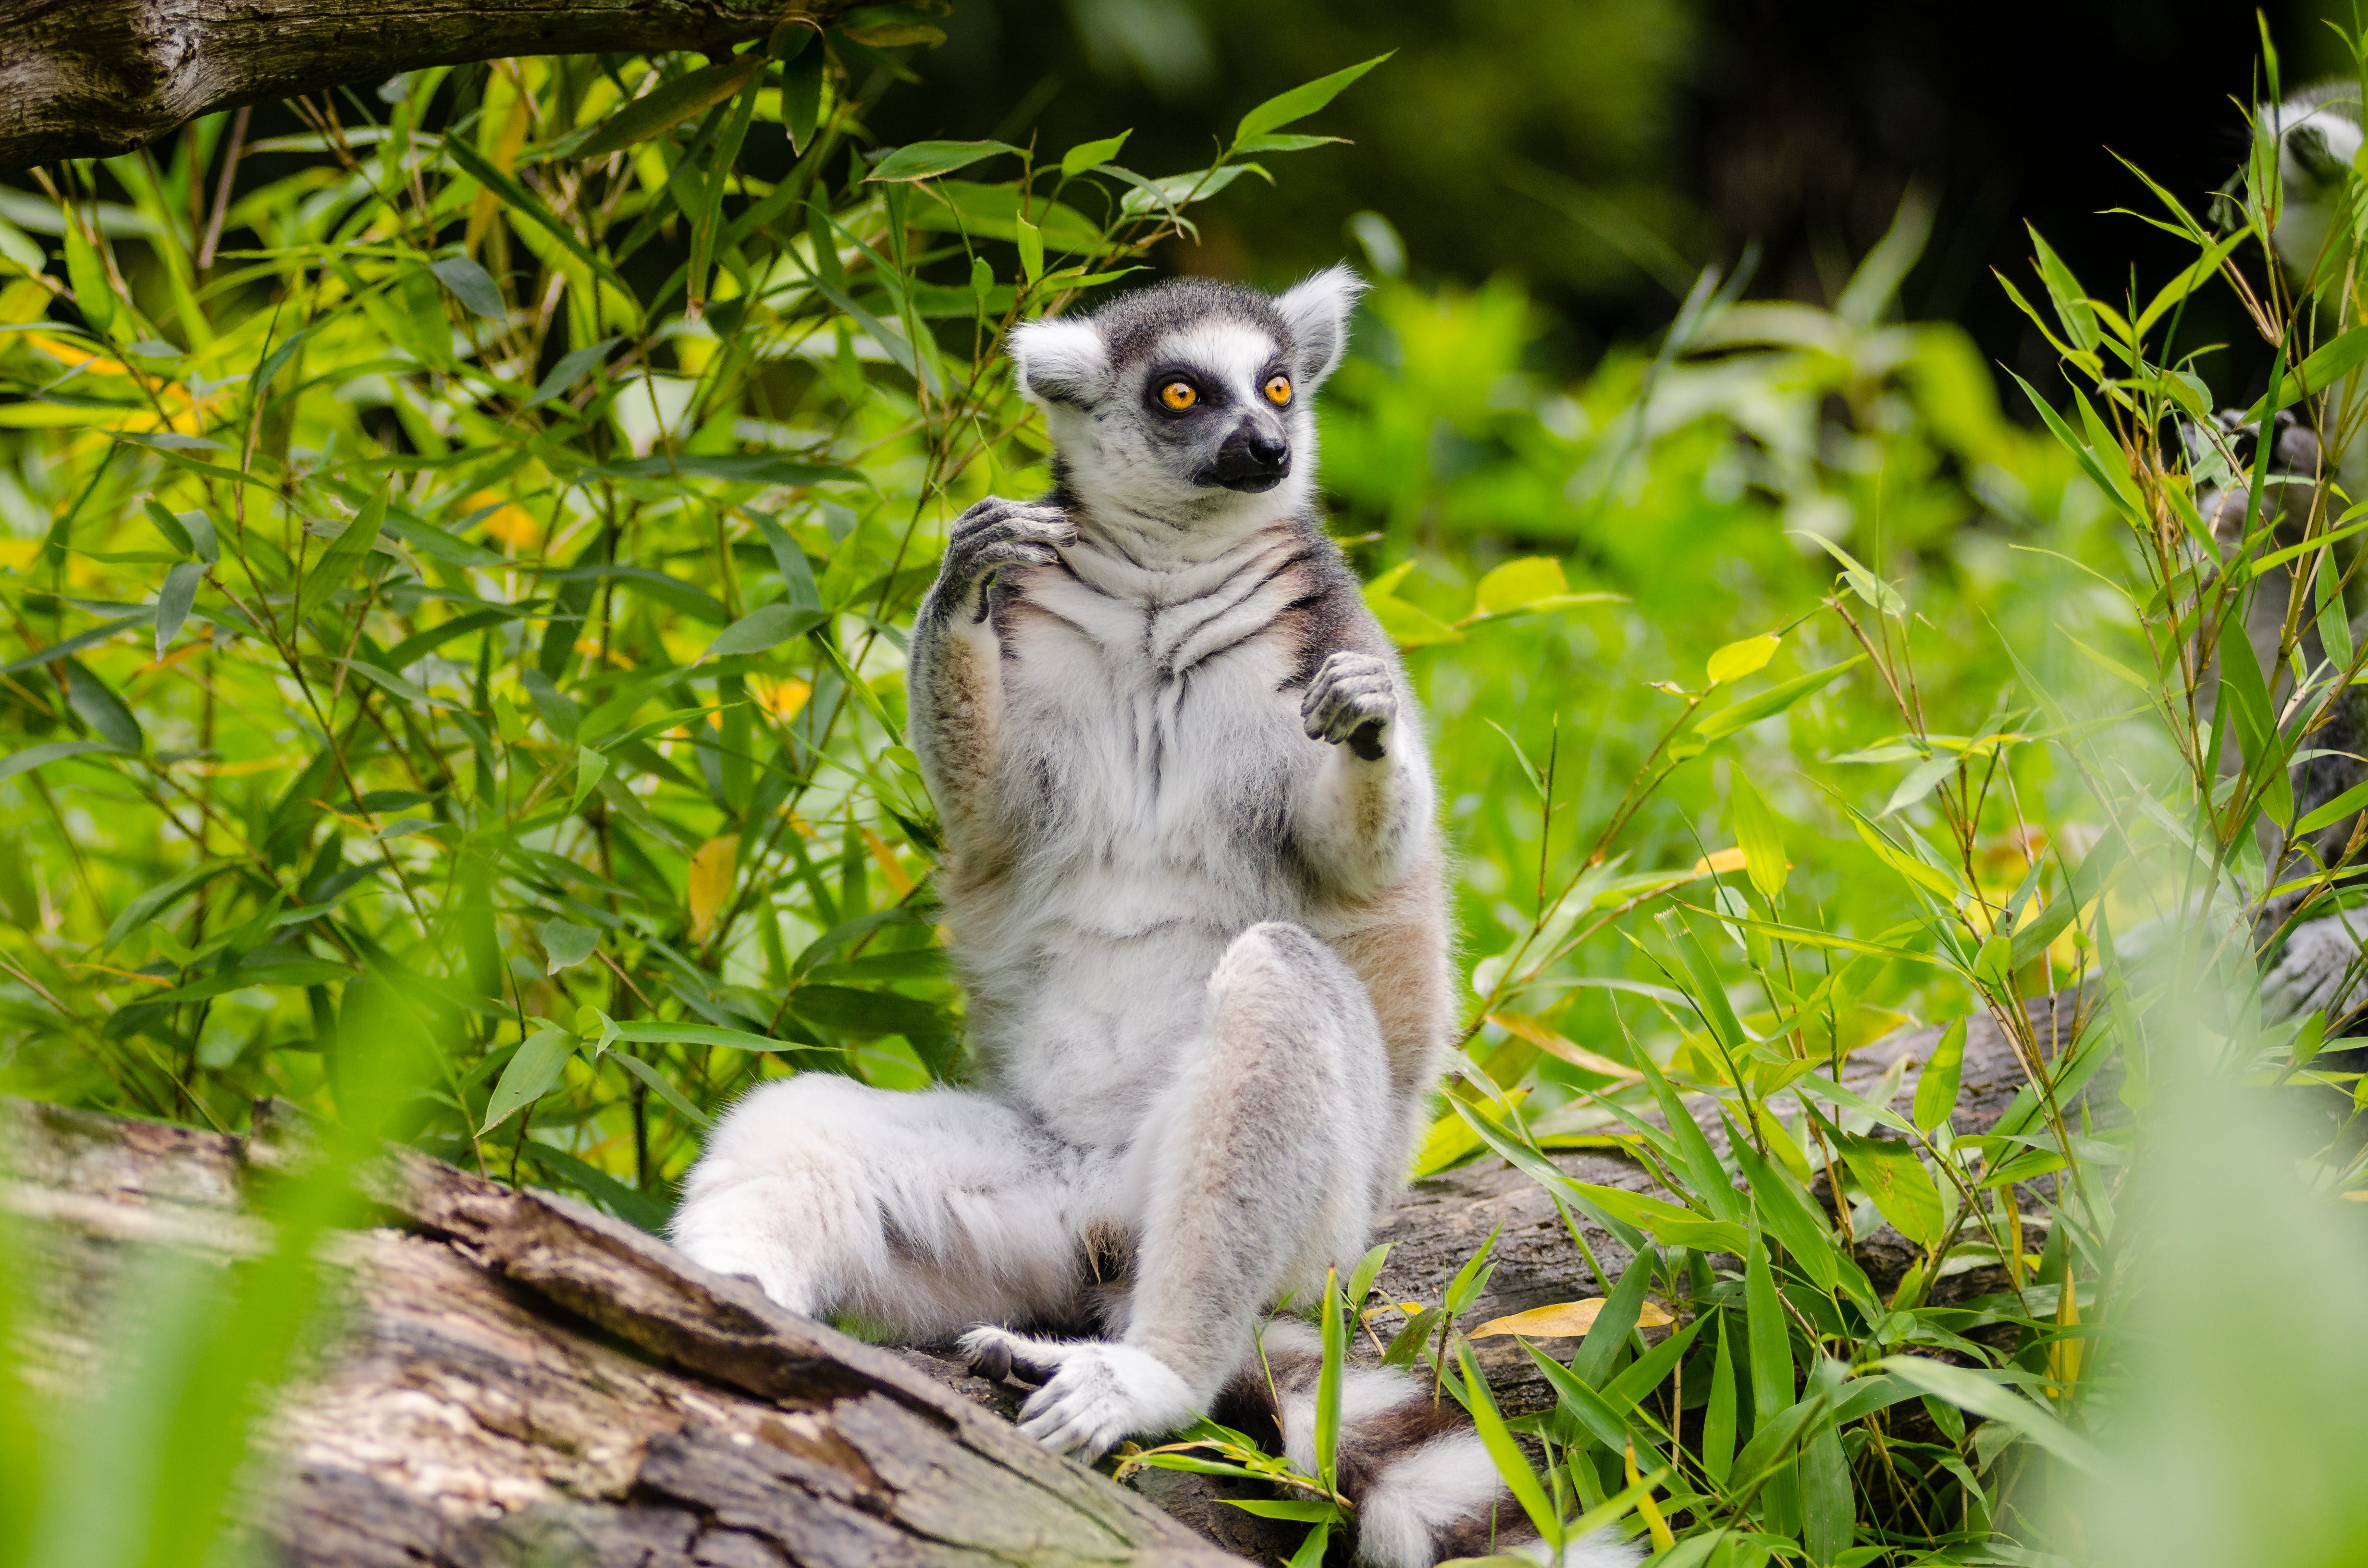 Lemur Sitting on Tree Trunk